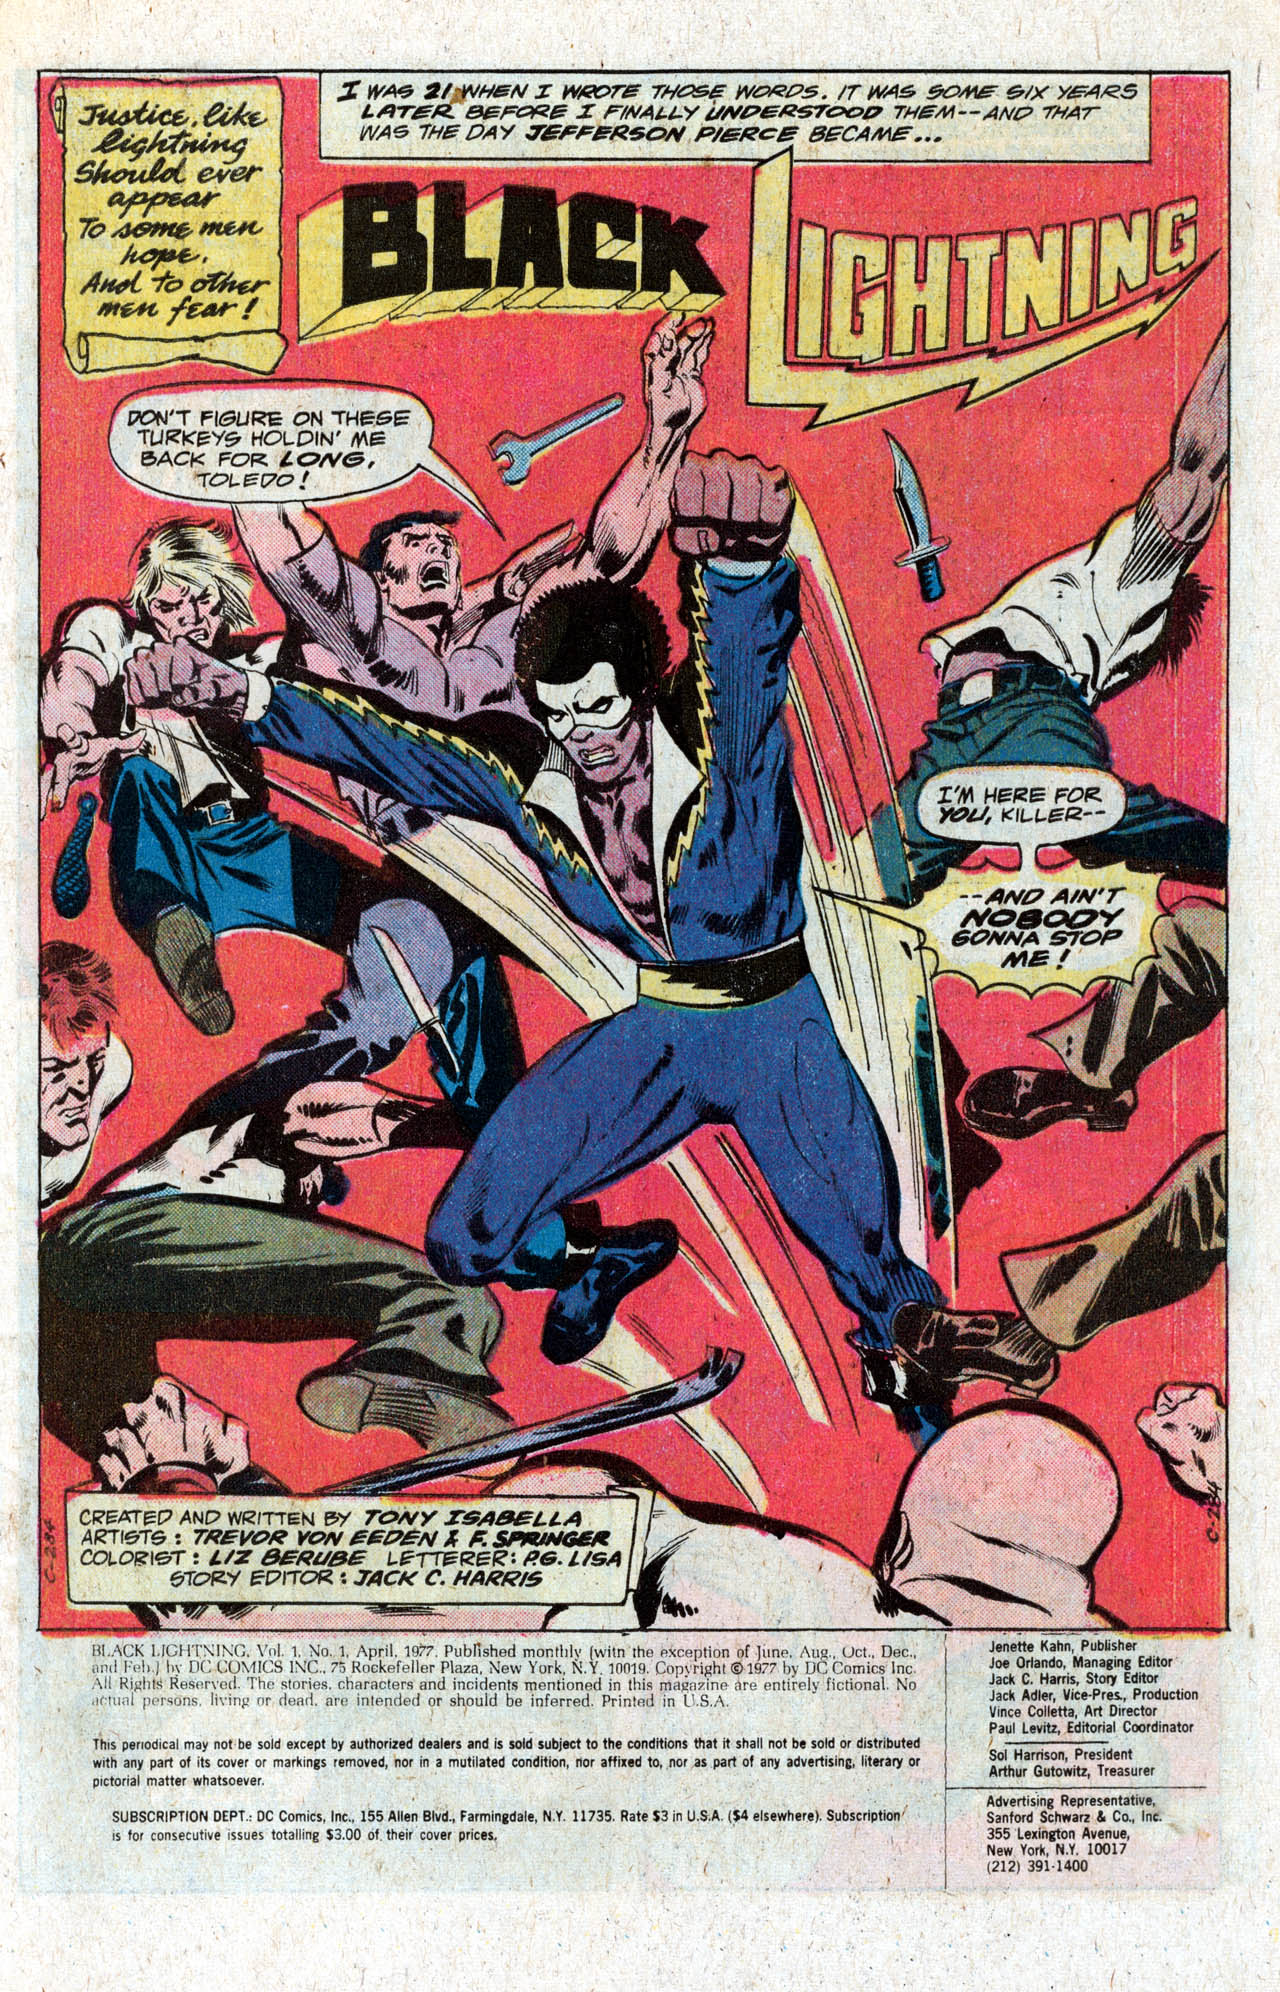 Black Lightning (1977) #1 pg1, penciled by Trevor Von Eedon, inked by Frank Springer, & colored by Liz Berube.